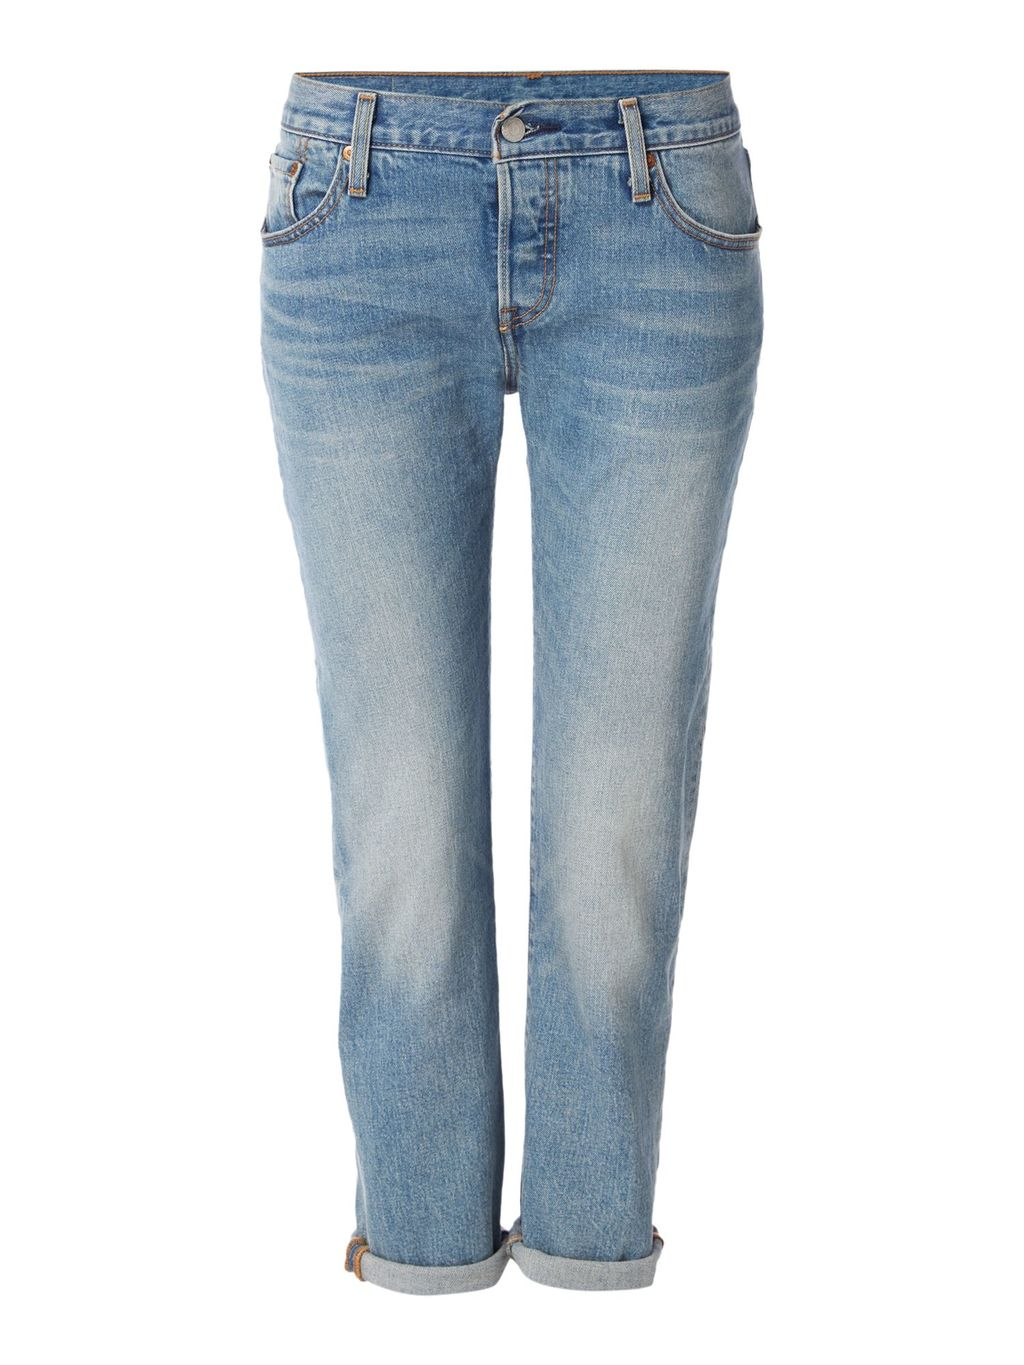 501 Boyfriend Tapered Jean In Island Azure, Denim Light Wash - style: boyfriend; length: standard; pattern: plain; pocket detail: traditional 5 pocket; waist: mid/regular rise; predominant colour: denim; occasions: casual; fibres: cotton - 100%; jeans detail: whiskering, shading down centre of thigh; jeans & bottoms detail: turn ups; texture group: denim; pattern type: fabric; wardrobe: basic; season: a/w 2016